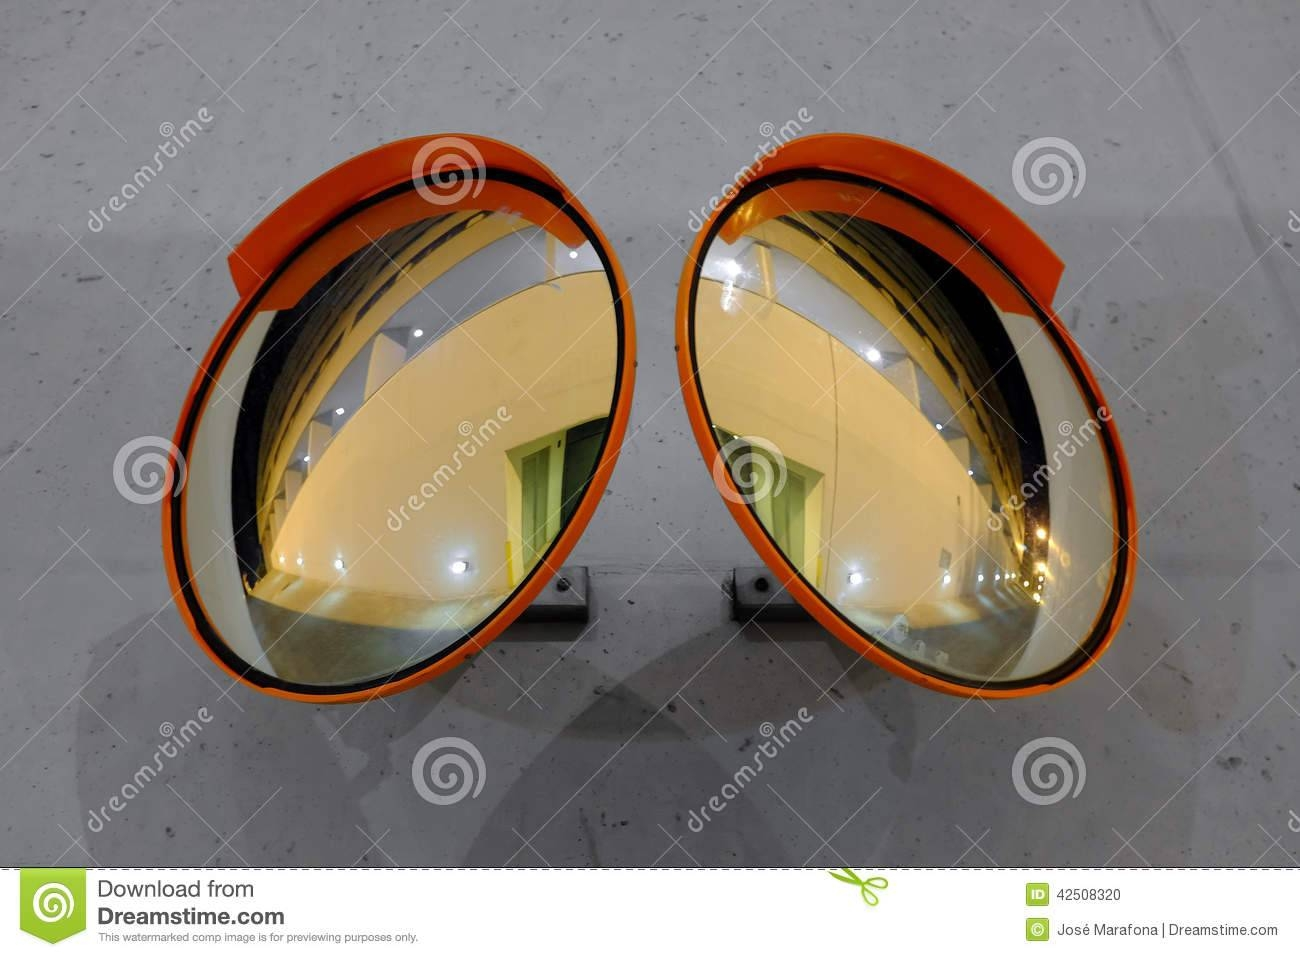 Safety Convex Mirrors Stock Photo - Image: 42508320 for Convex Mirrors (Image 13 of 15)